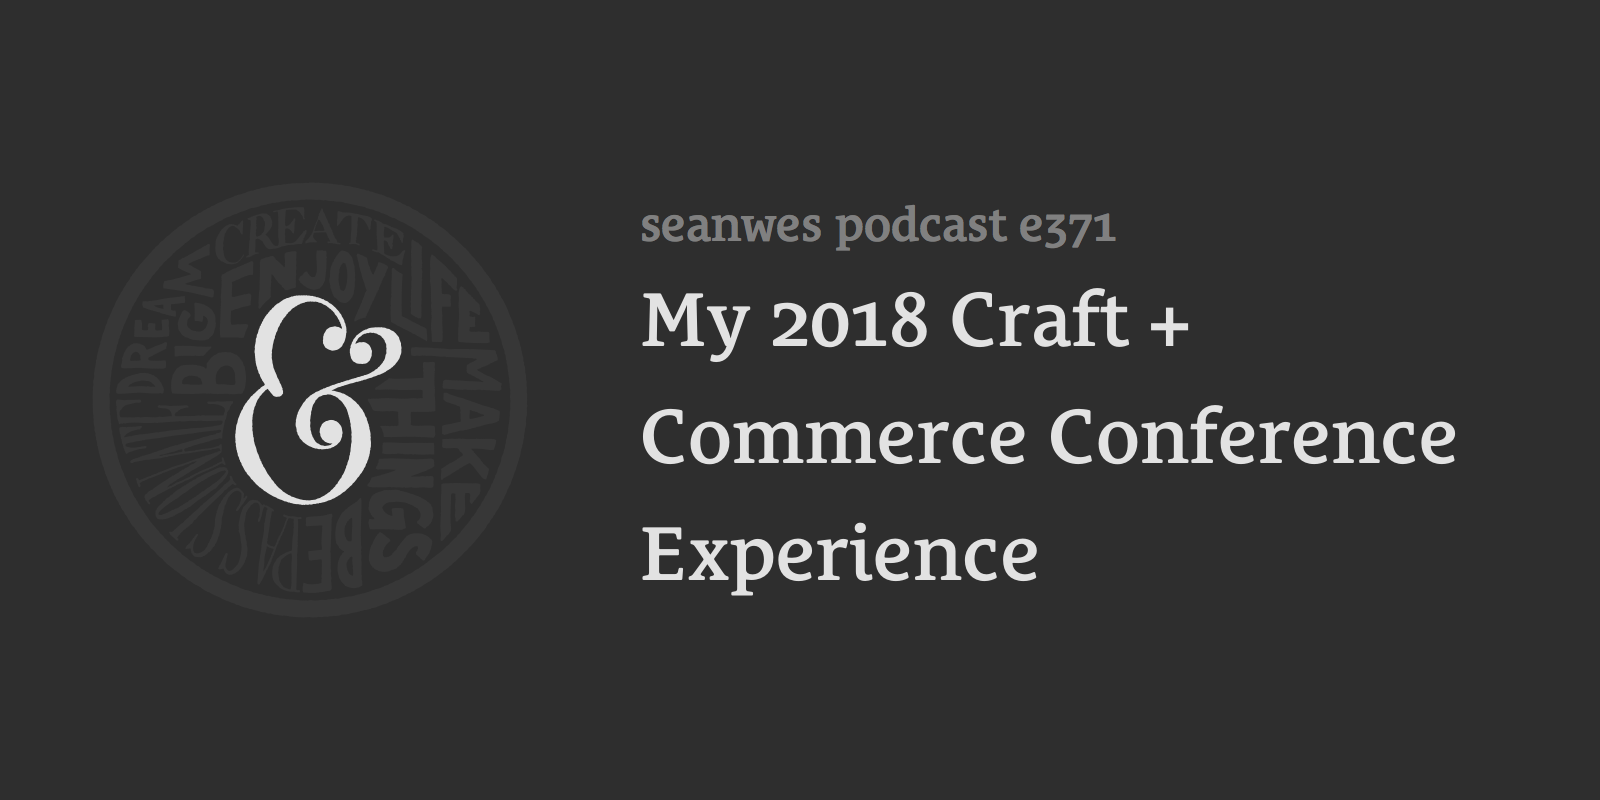 My 2018 Craft + Commerce Conference Experience